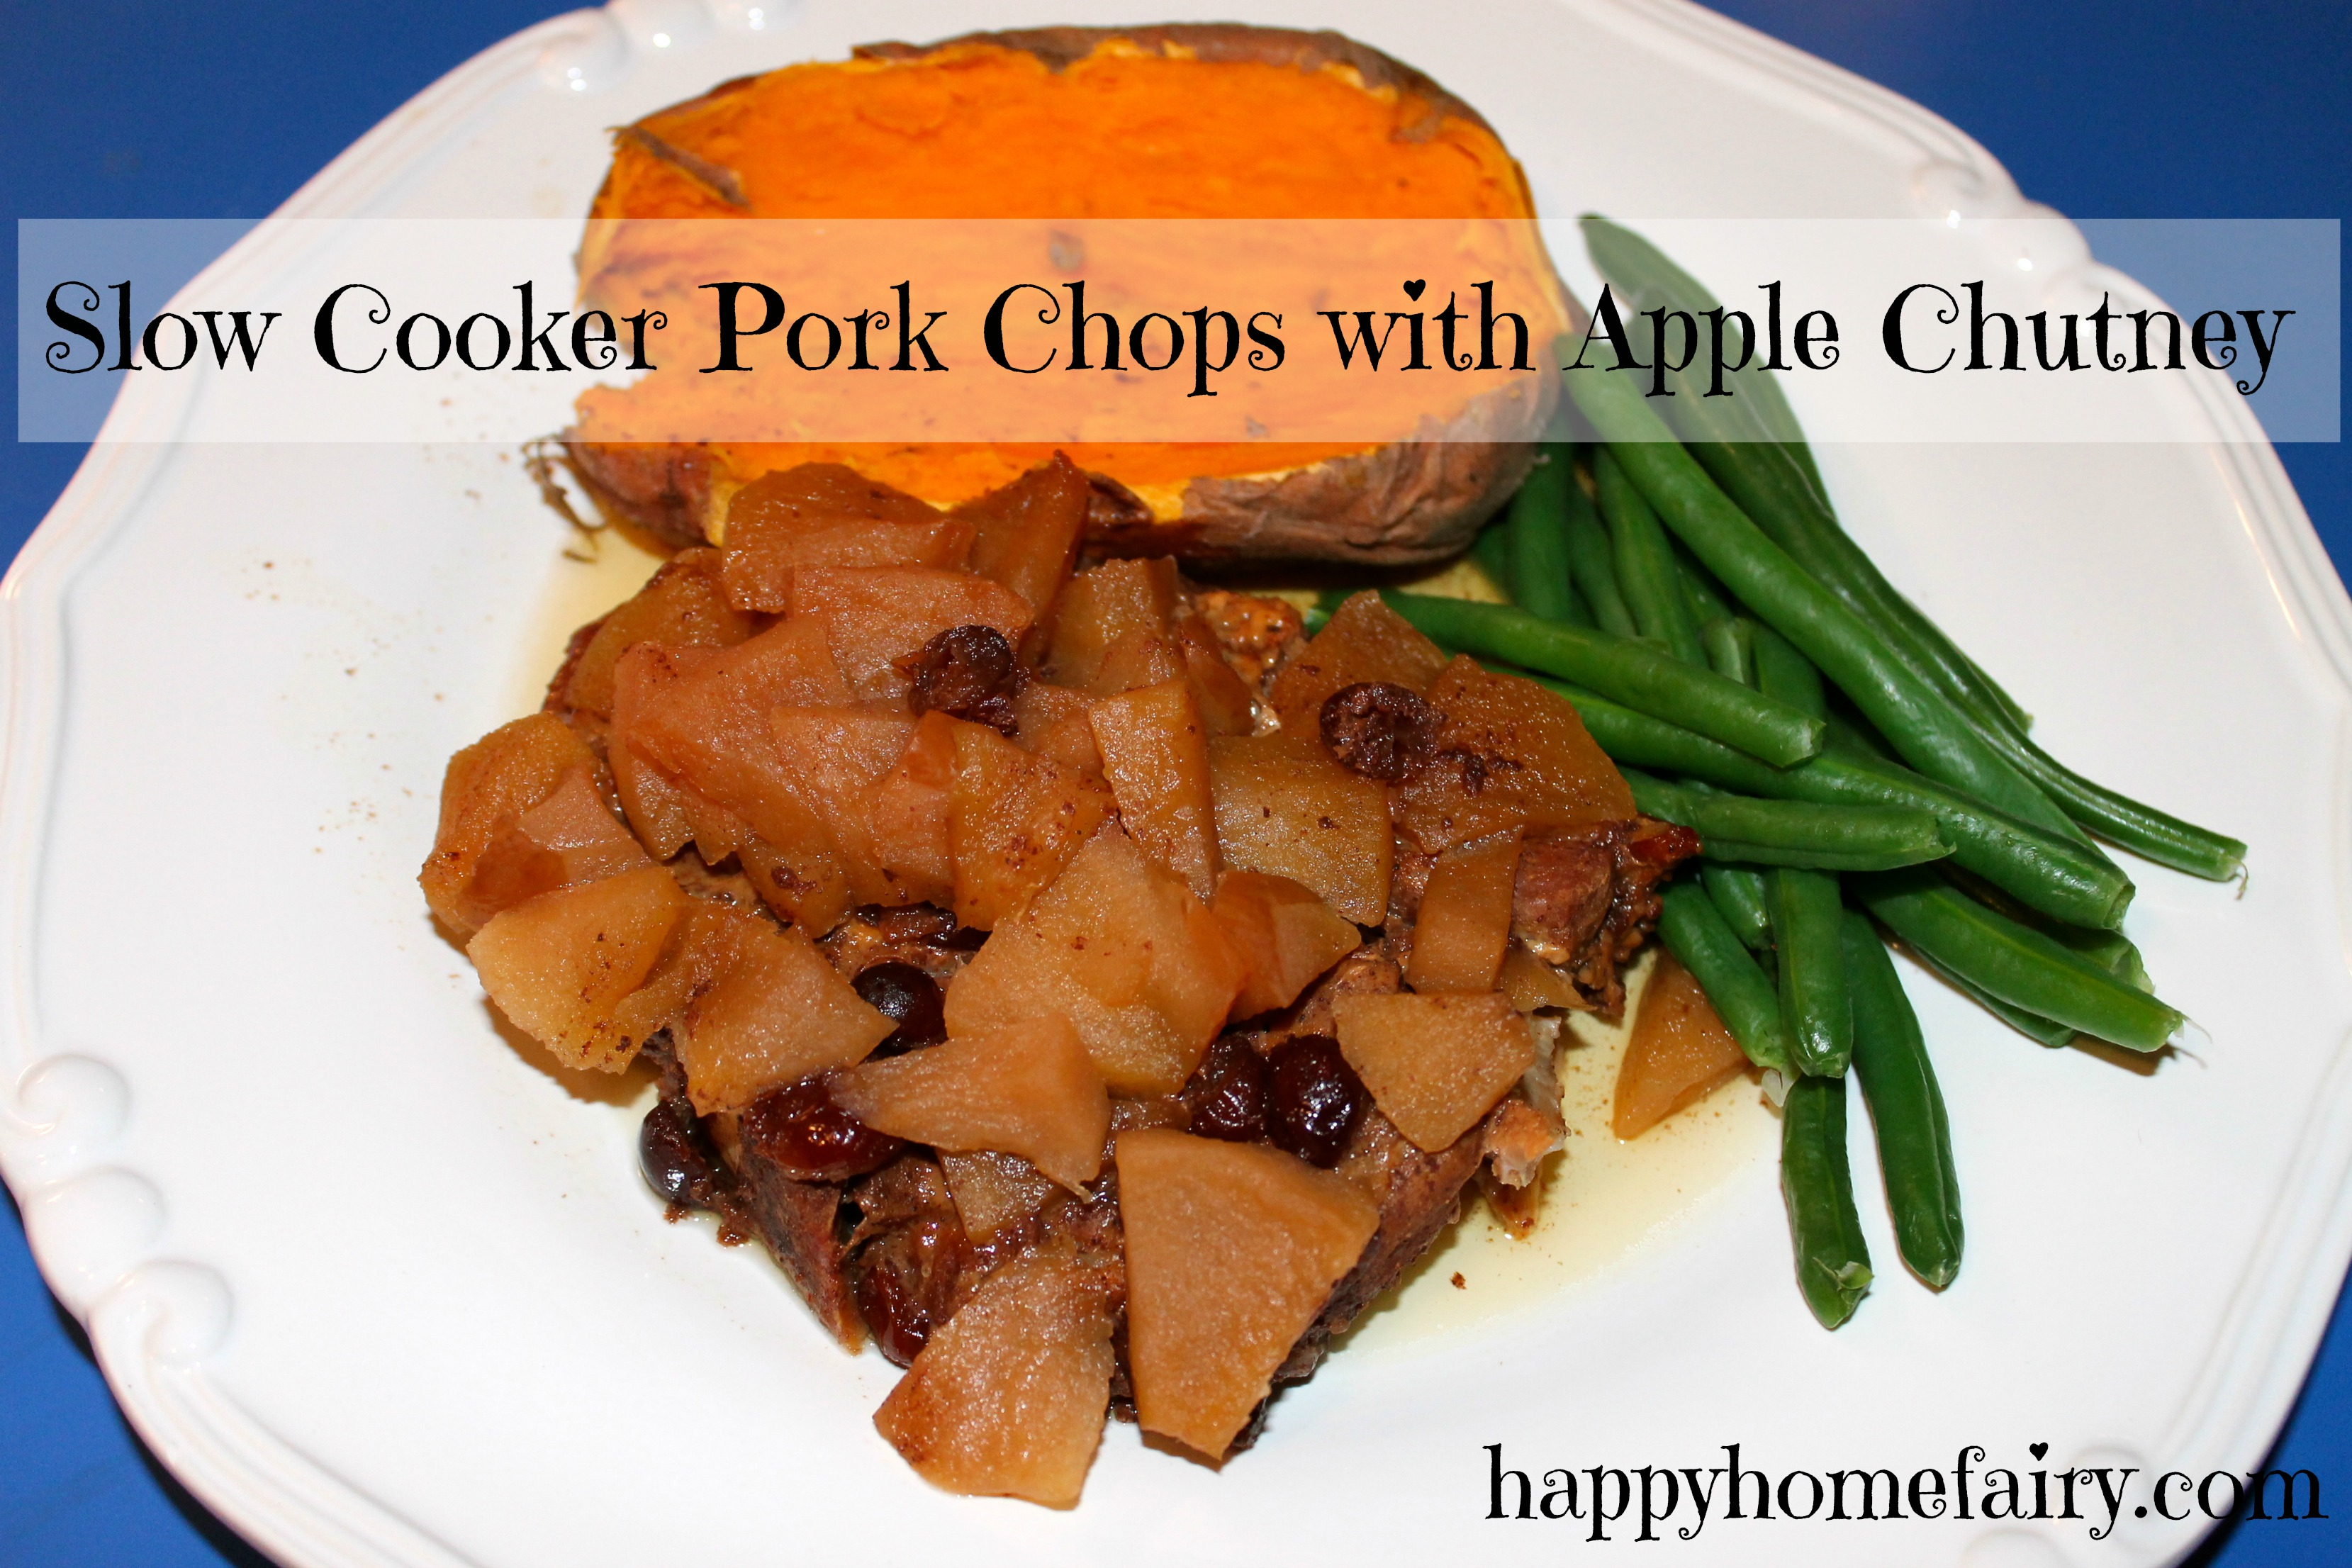 Recipe - Slow Cooker Pork Chops with Apple Chutney - Happy Home Fairy